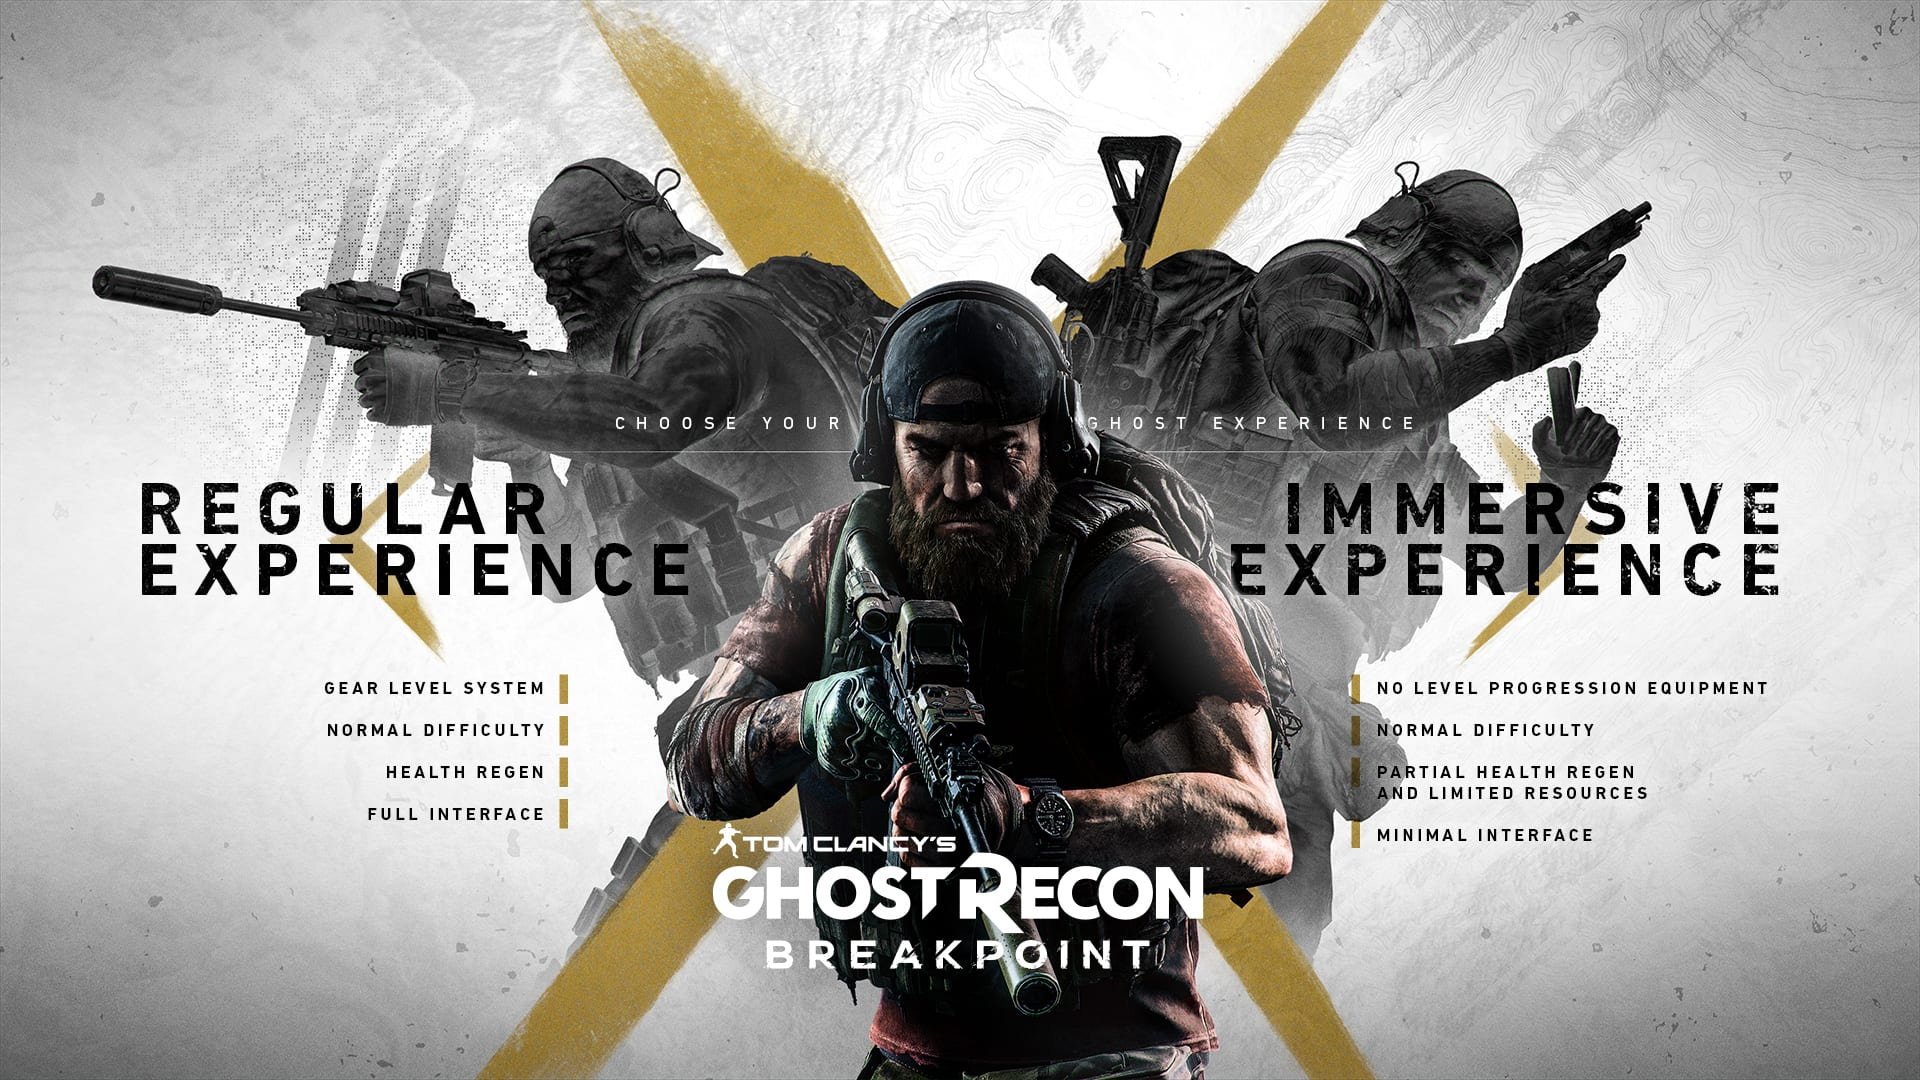 Tom Clancy's Ghost Recon Breakpoint Episode 2 Available Now